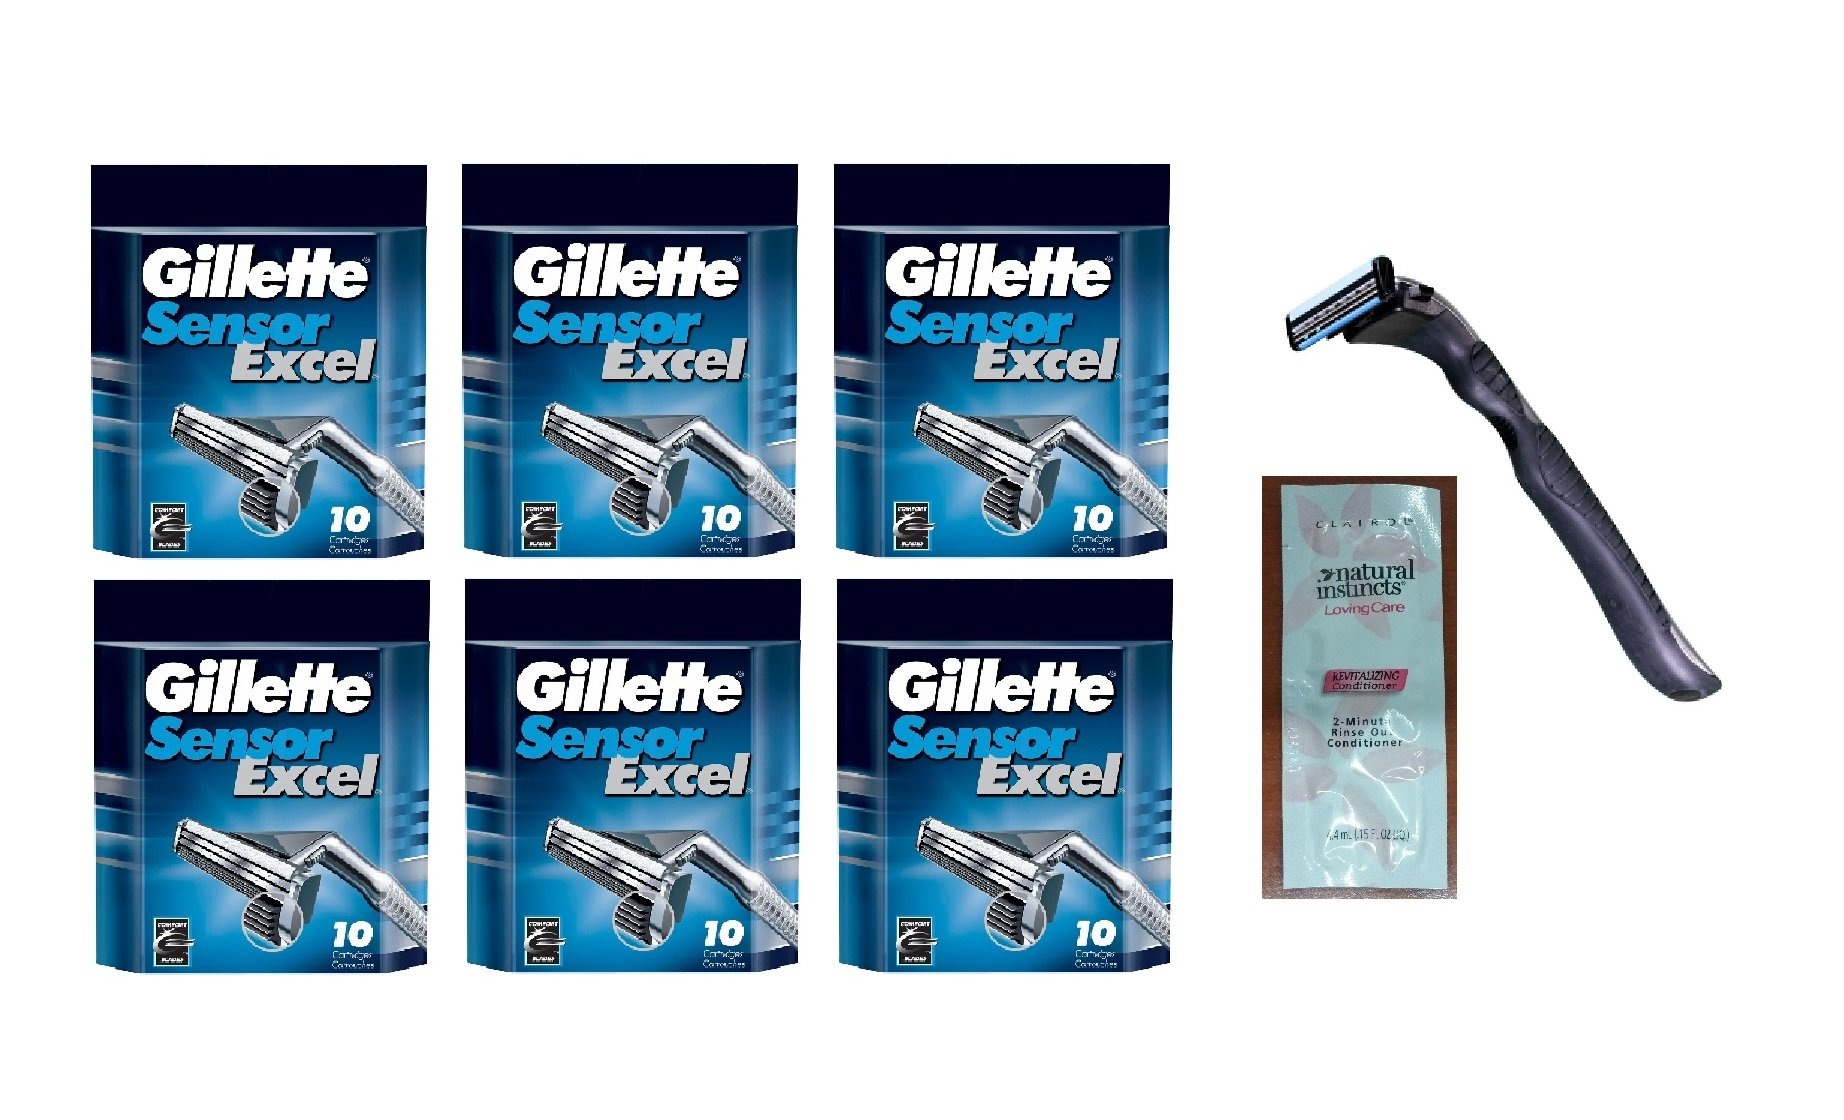 Compatible Razor Handle + Sensor Excel Refill Razor Blade Cartridges, 10 Ct. (handle holds Sensor Excel Blades) (Pack of 6) with FREE Loving Color trial size conditioner . World's Best Razor Holder ! Quality that is Out of This World ! Durable & Rugged !